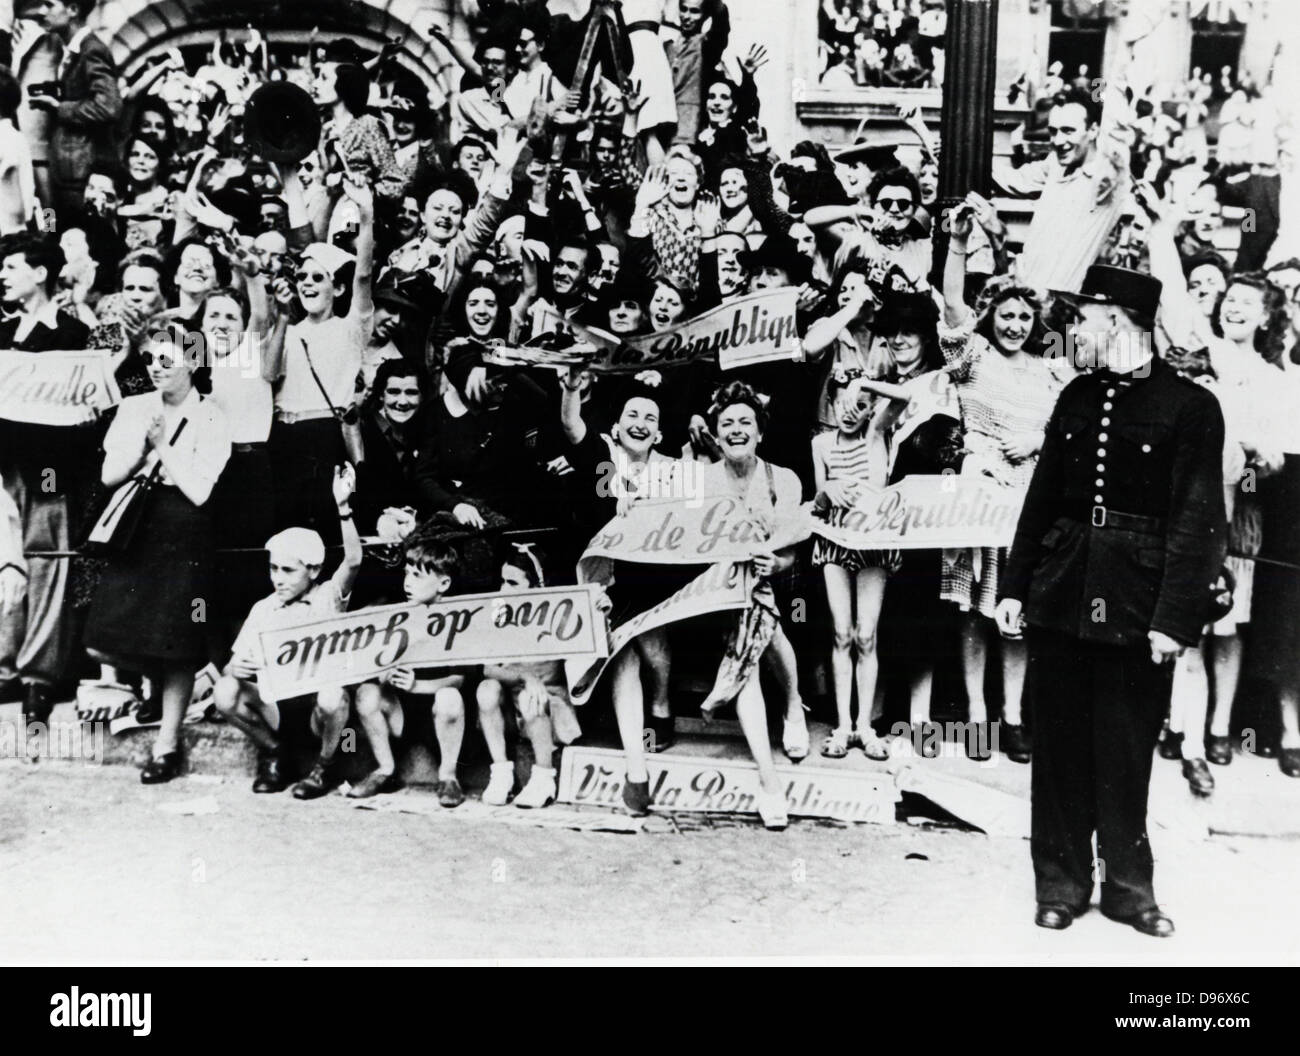 French civilians celebrating the Liberation of Paris in 1944. World War II. - Stock Image